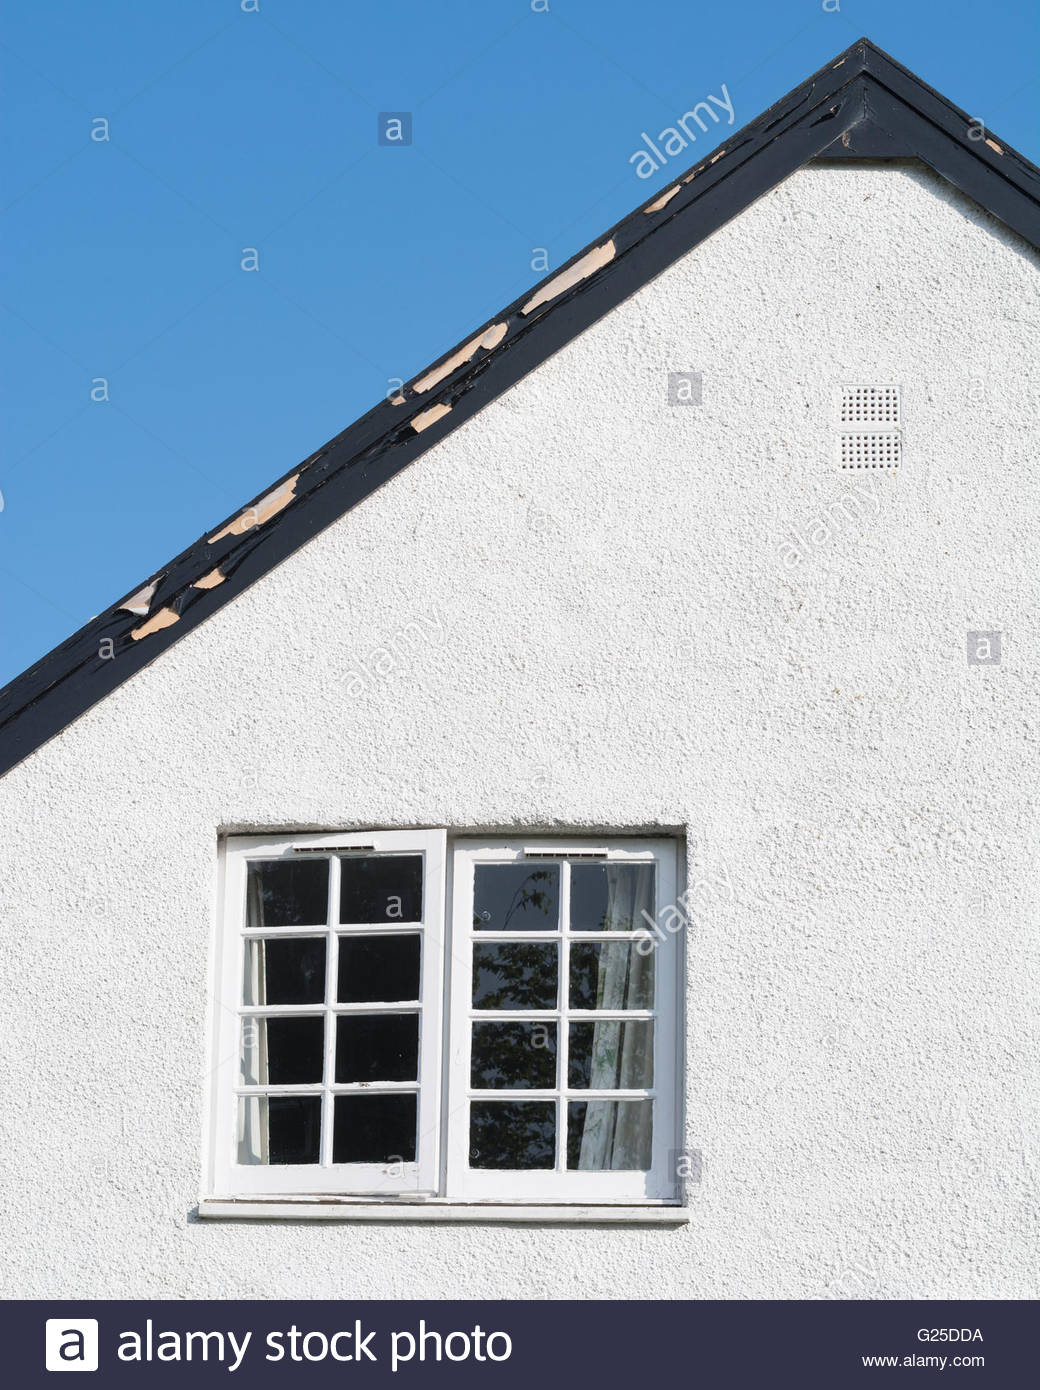 house fascia paint house eaves in need of painting with flaking